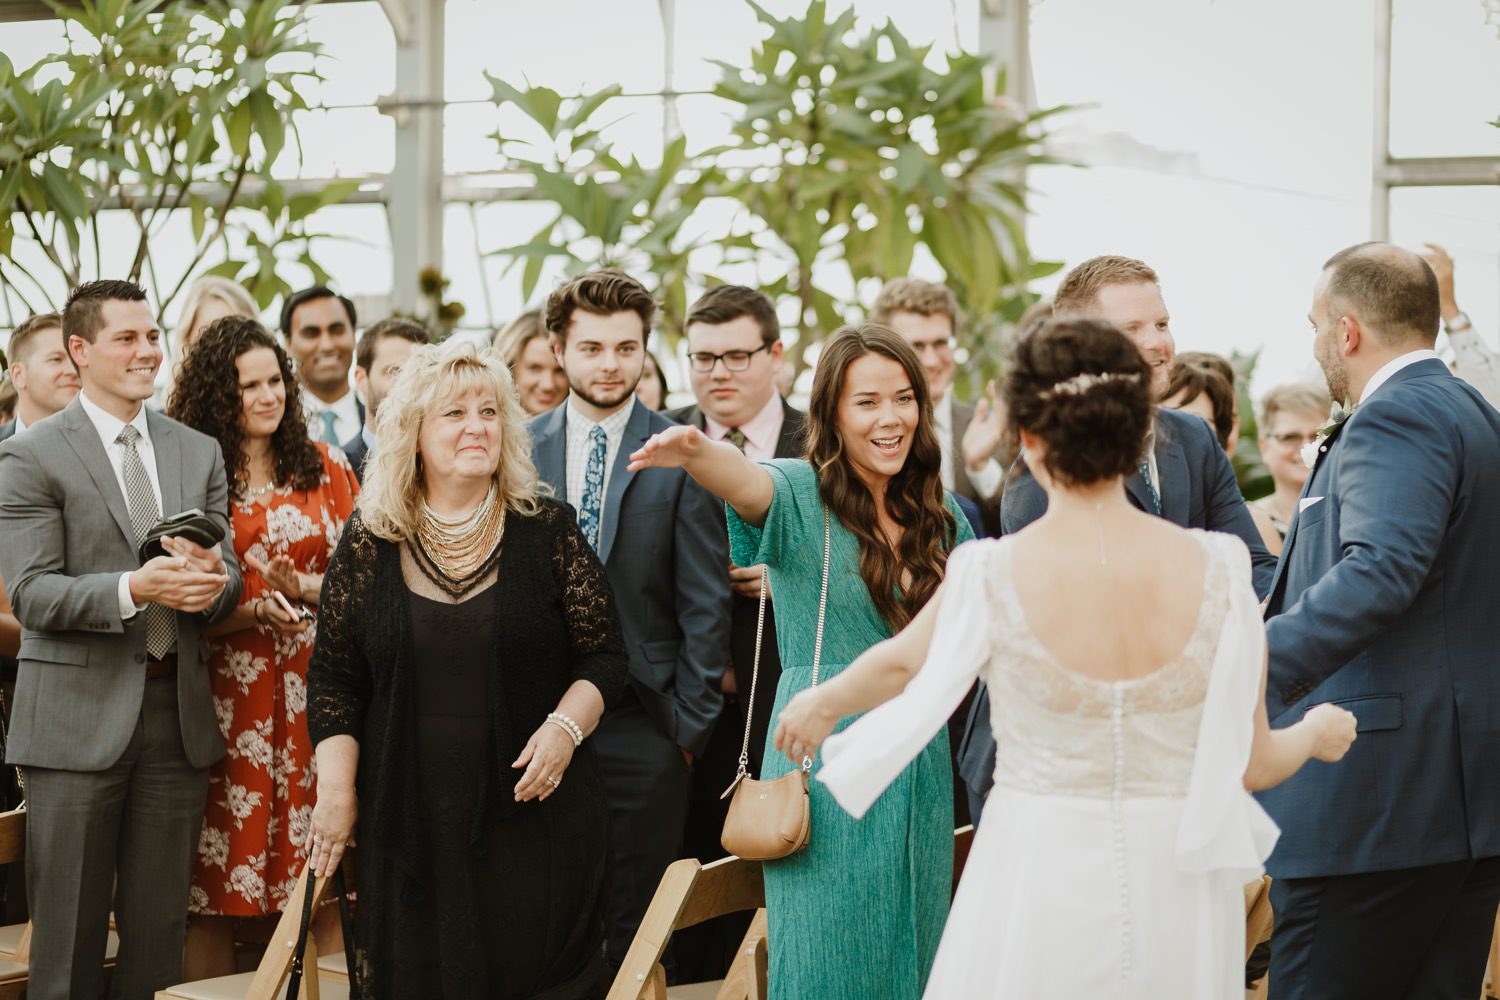 Guests and family hug the bride after the wedding ceremony at Garfield Park conservatory